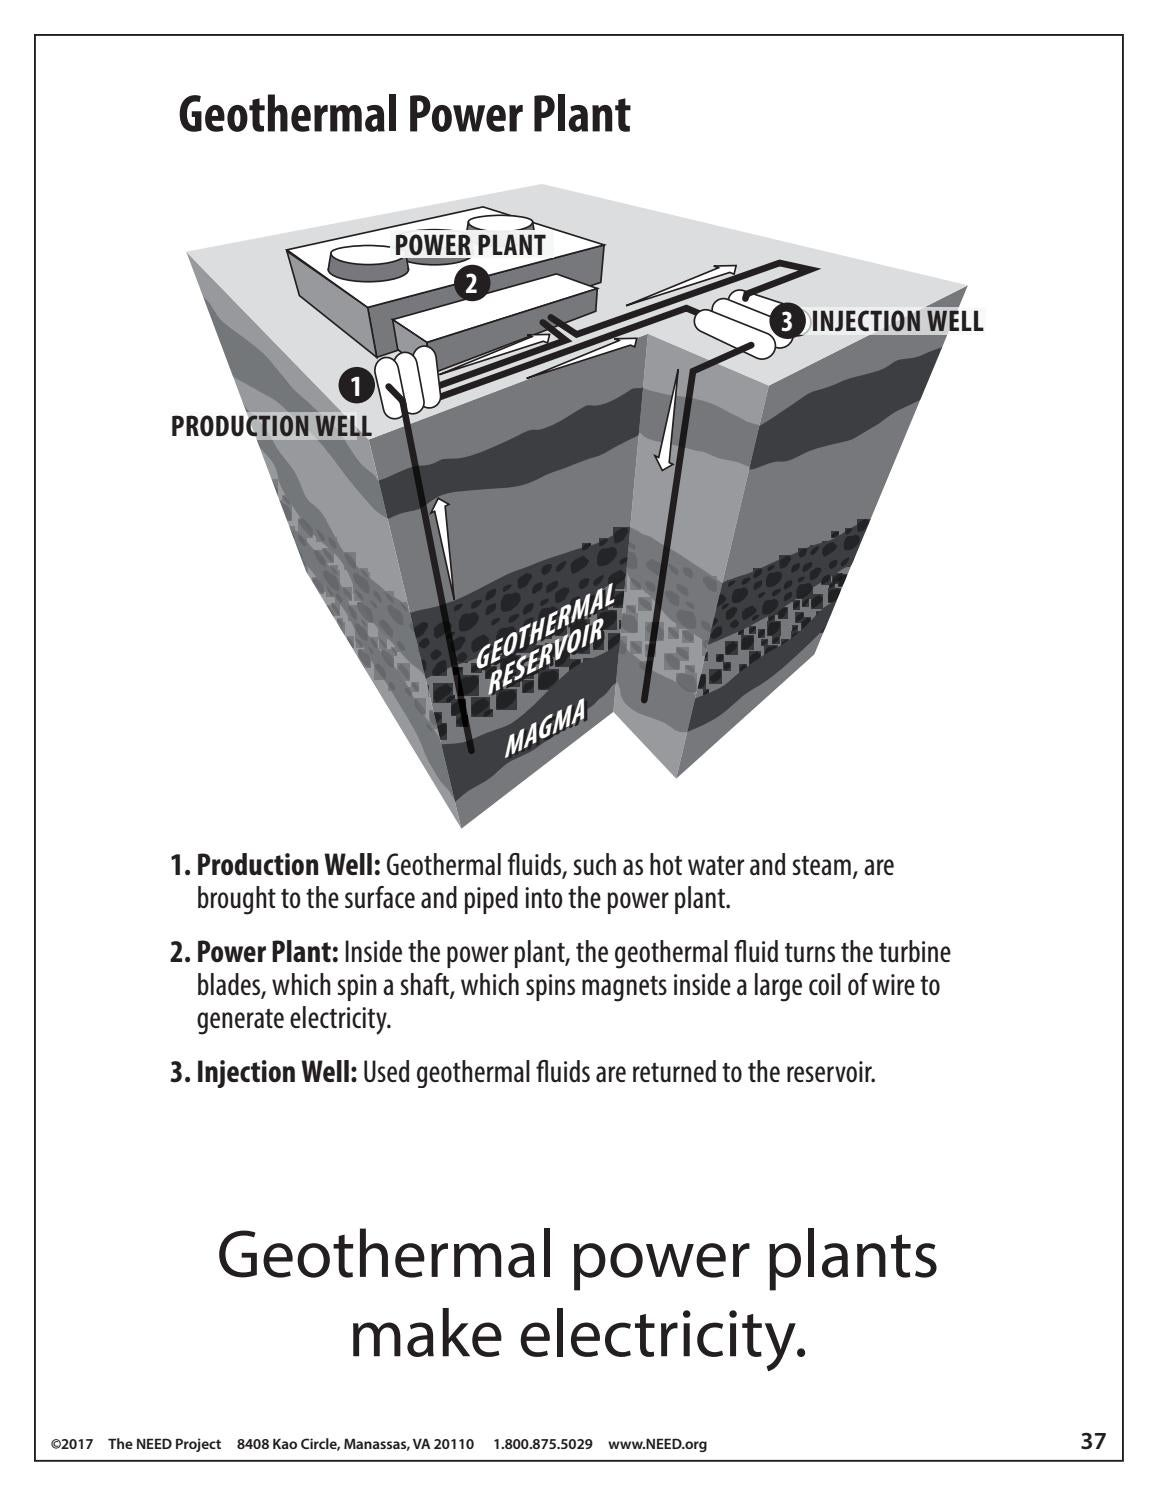 Primary Energy Infobook By Need Project Issuu Geothermal Power Plant Diagram